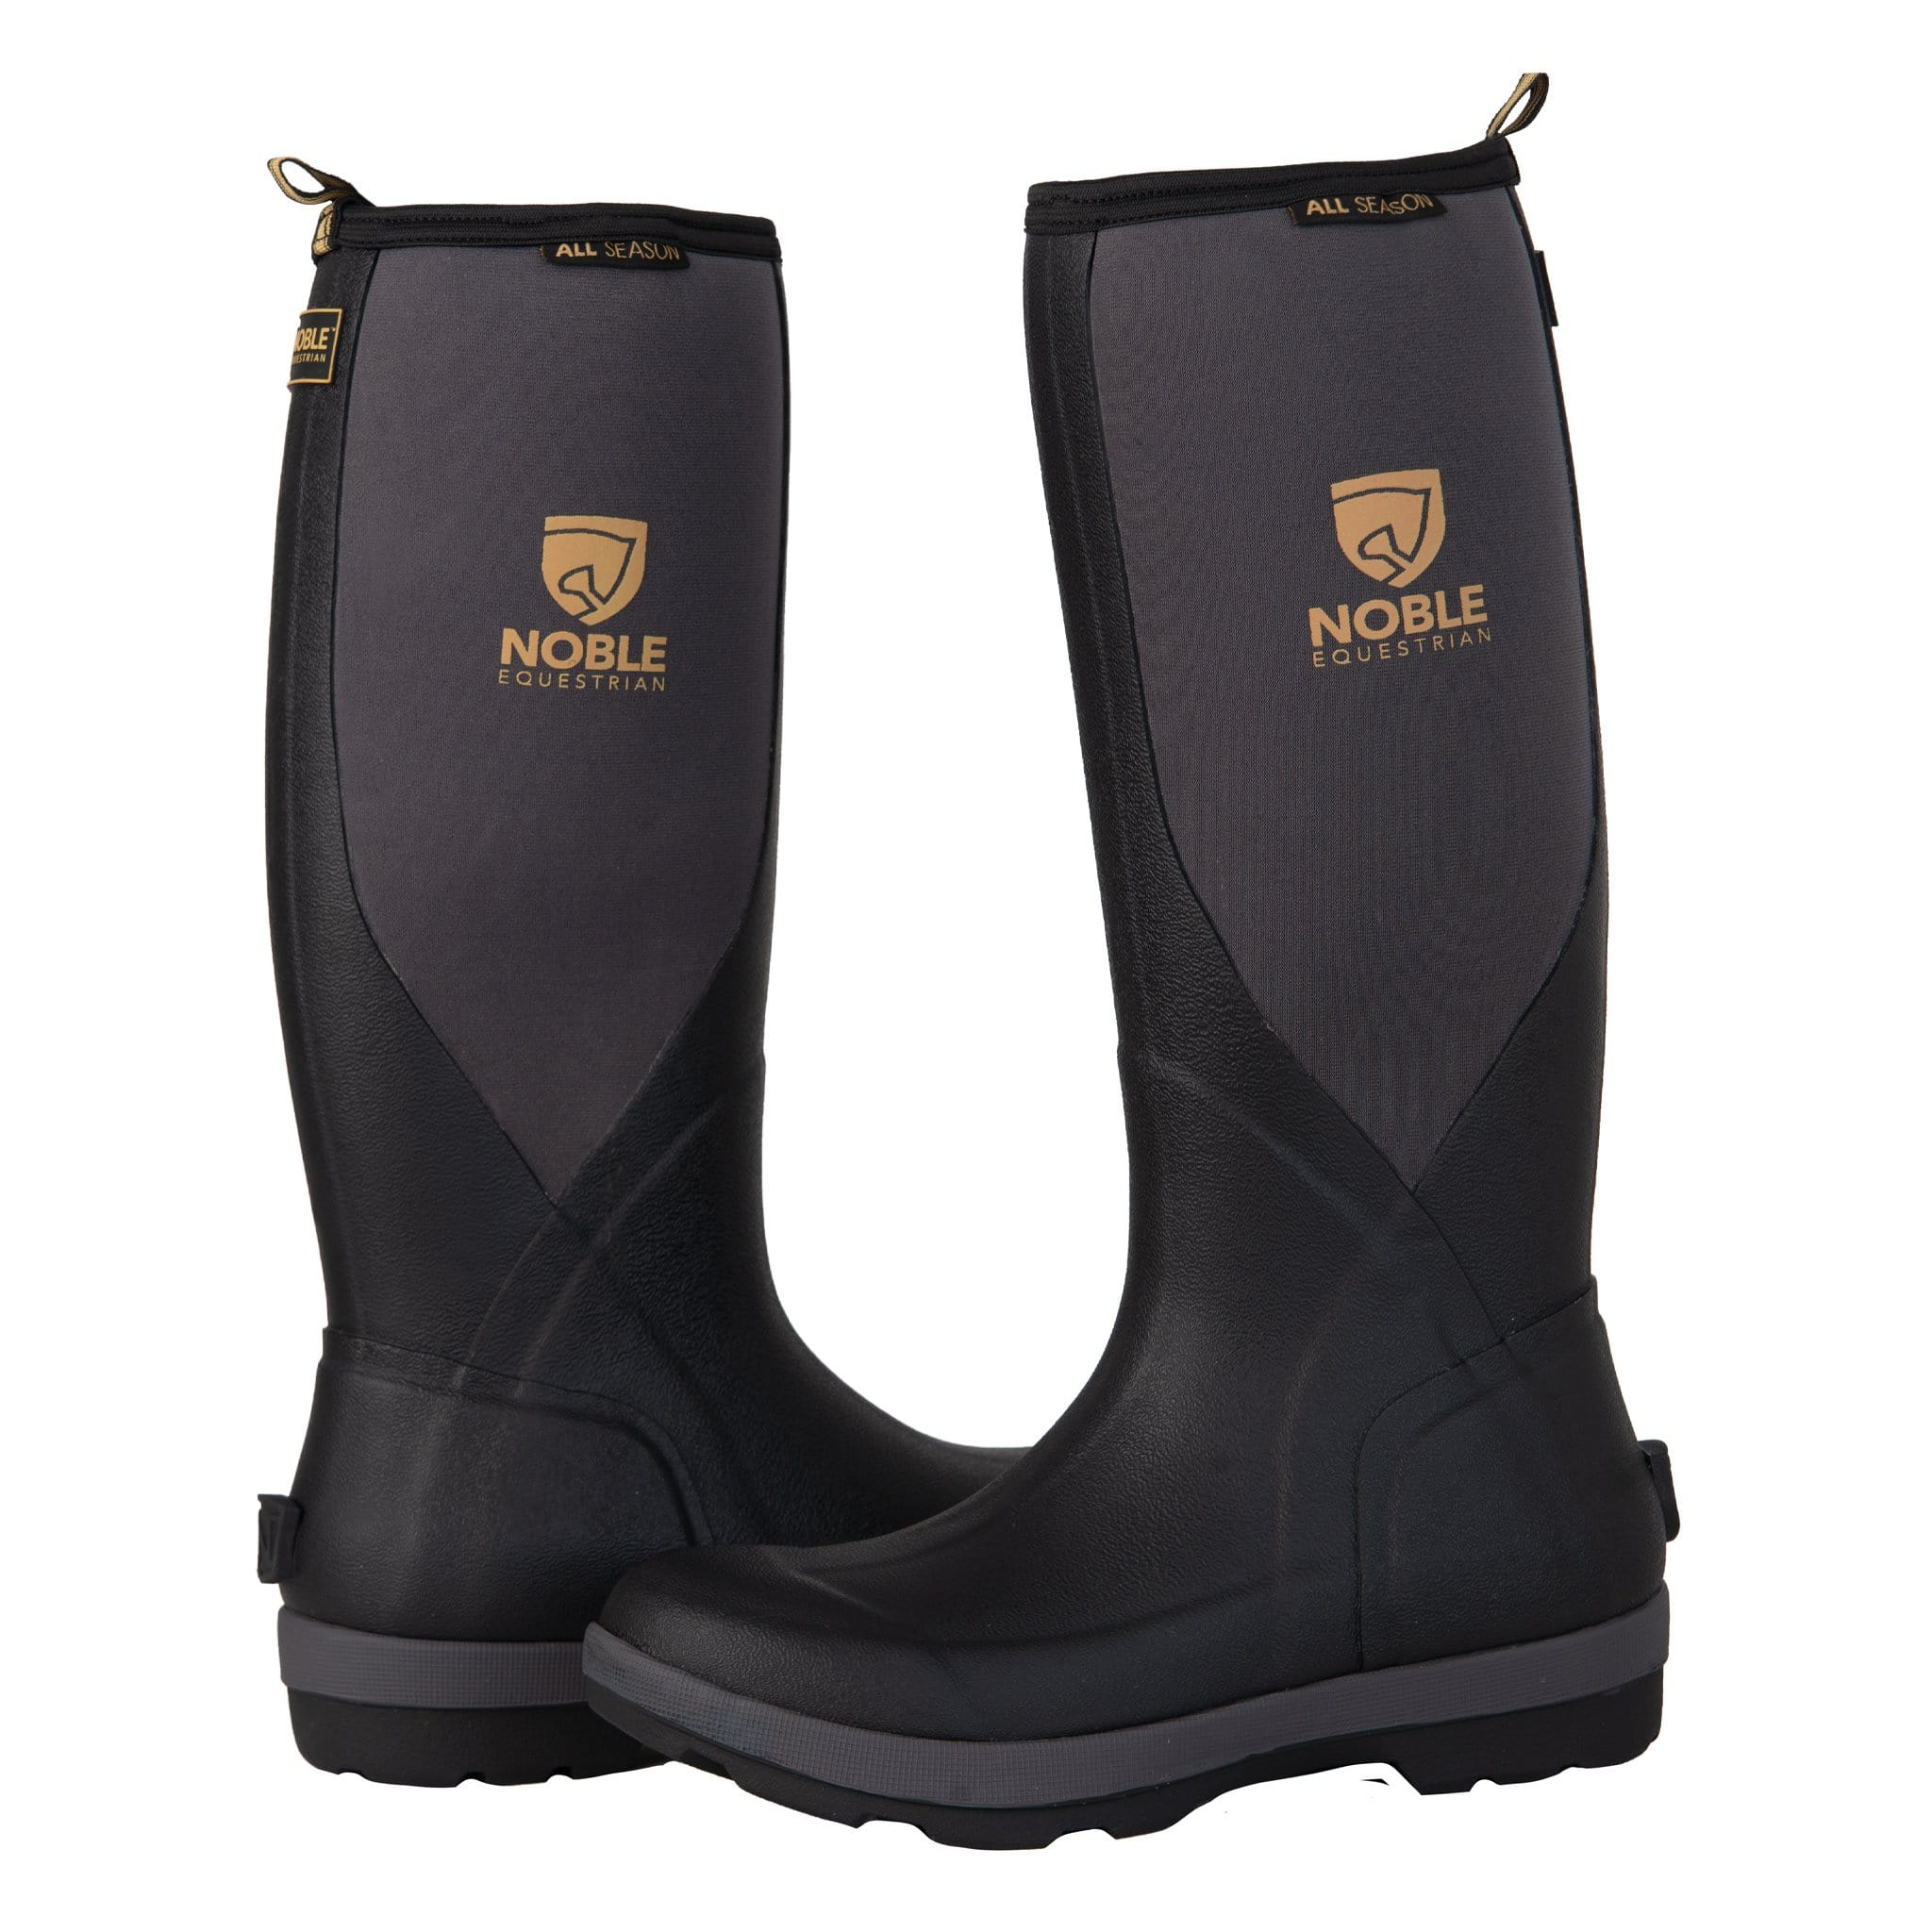 Noble Equestrian Perfect Fit All Season High Boots 66053.